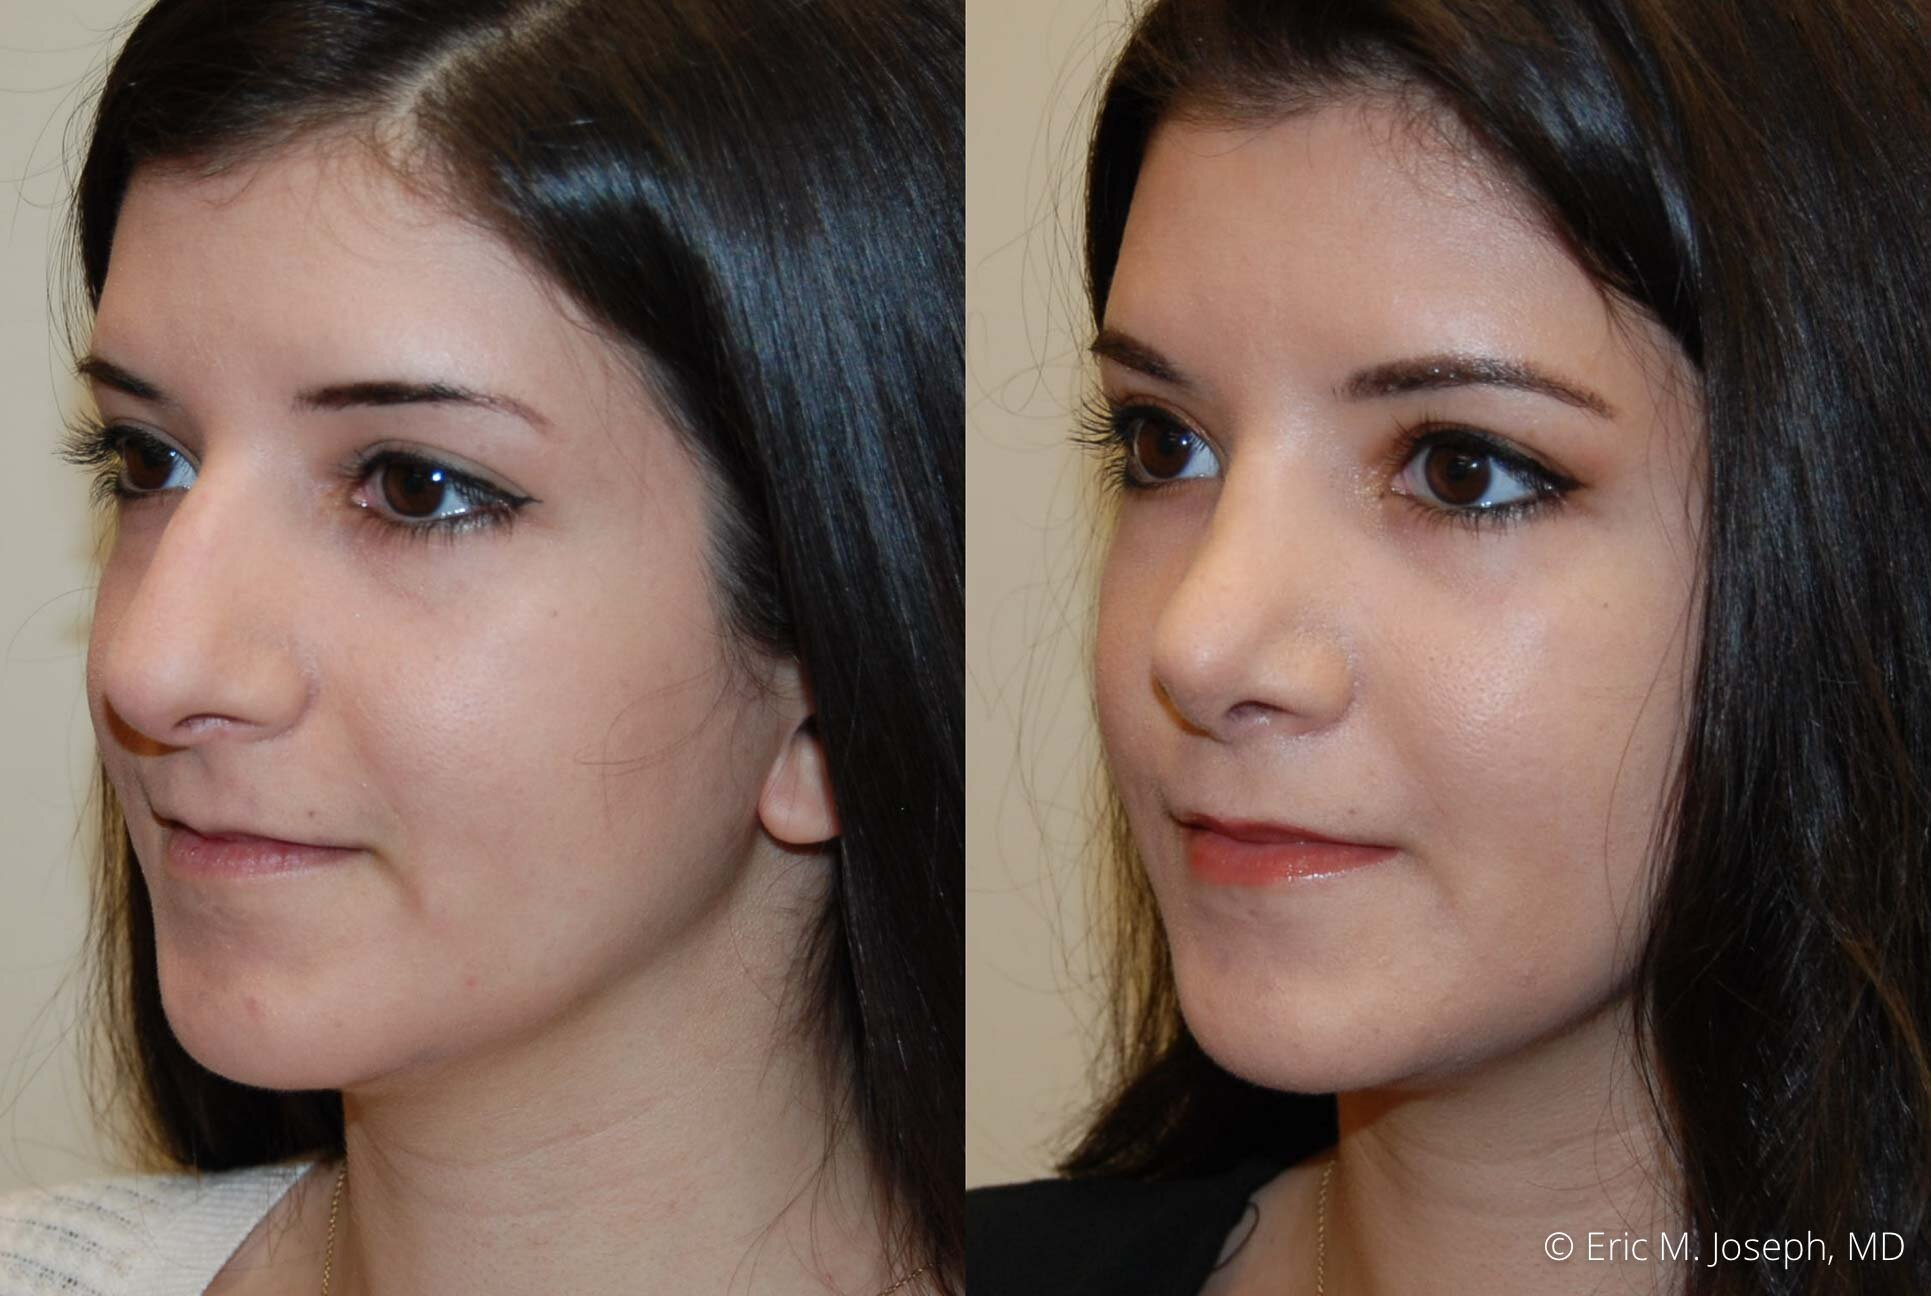 rhinoplasty-nose-job-nyc-nj-0481.jpg